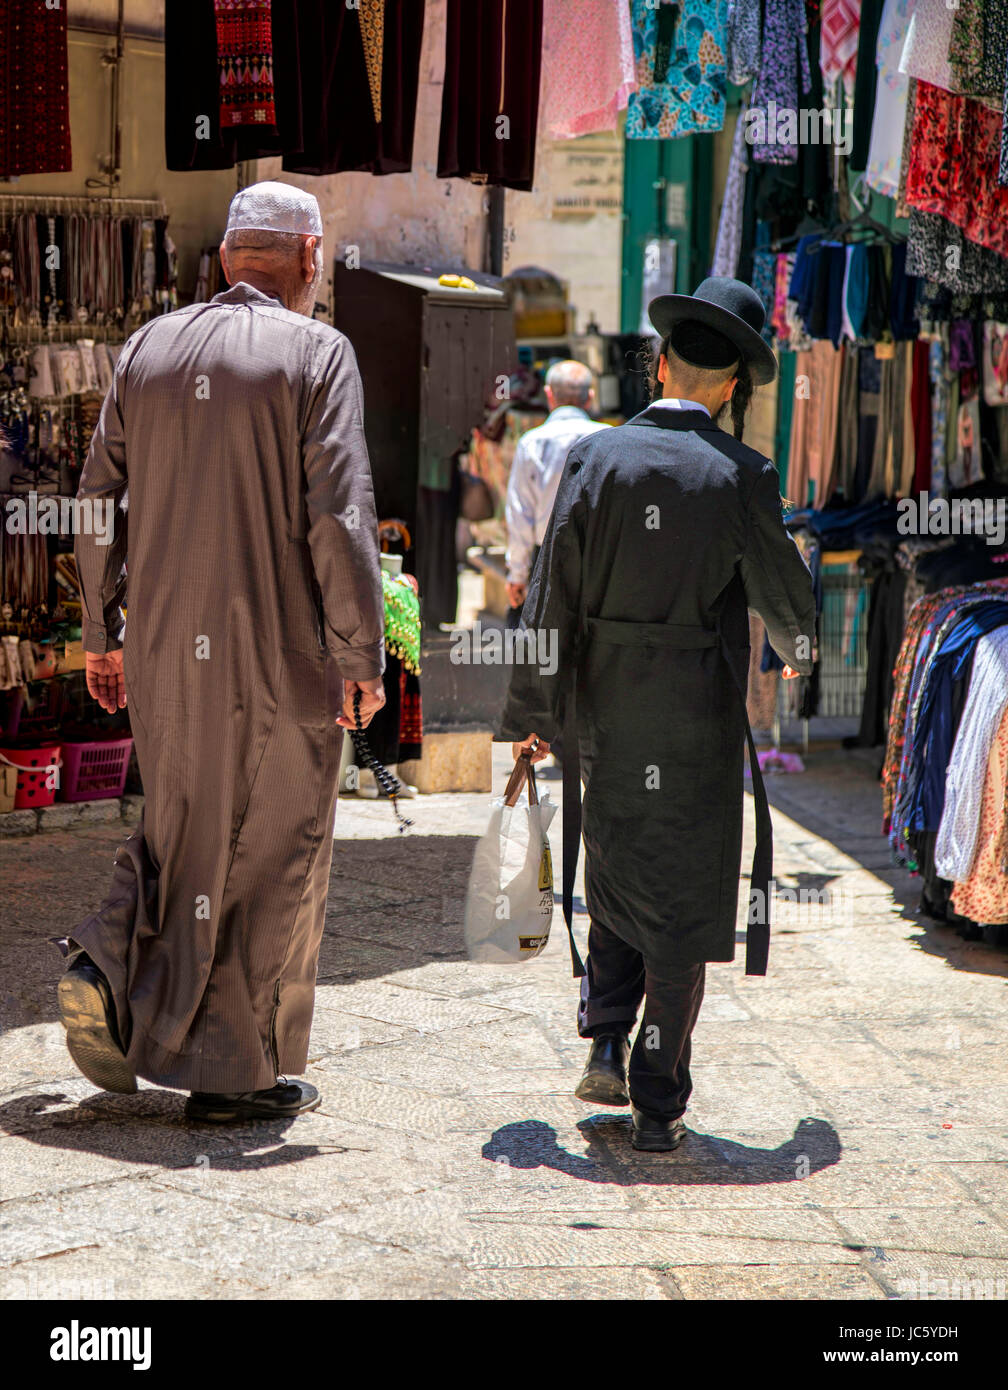 Street view of an old Arab man with prayer beads and a young Orthodox Jew lwith sidelocks carrying his shopping, - Stock Image